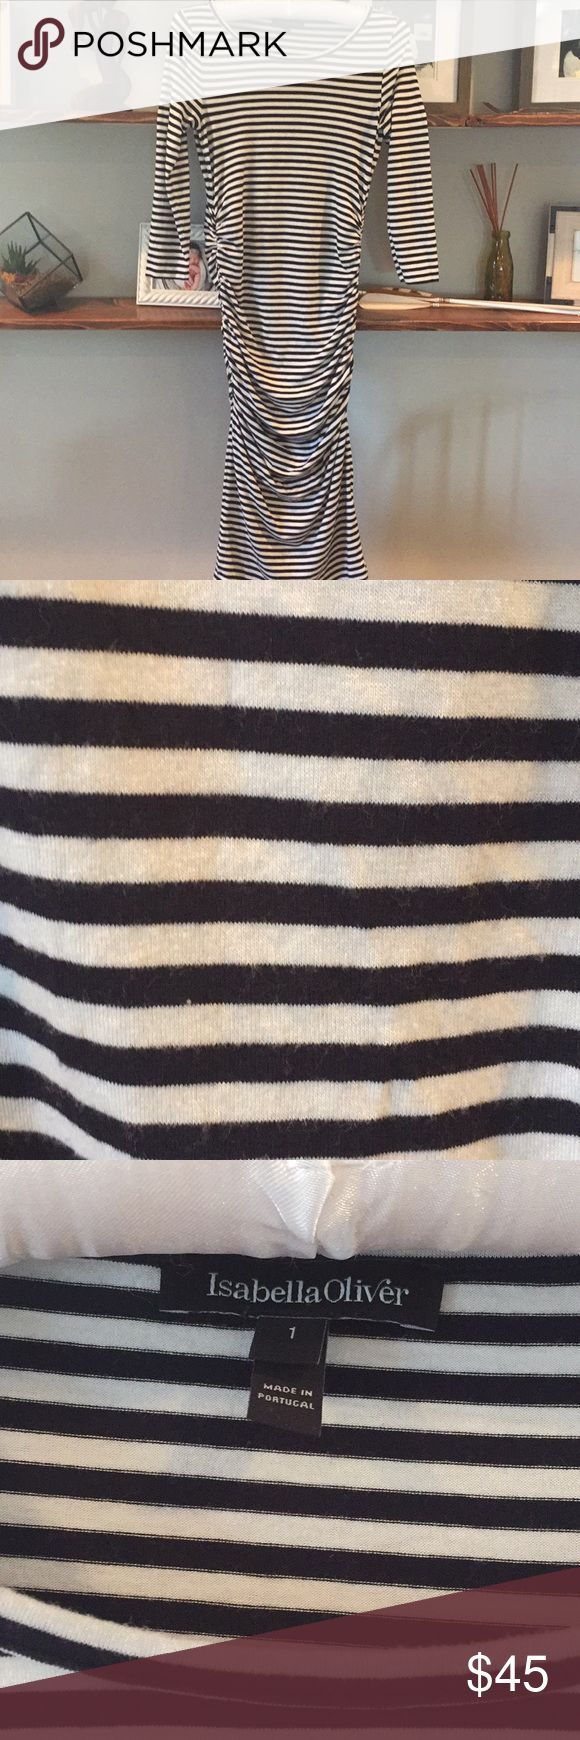 Isabella Oliver maternity fitted dress Isabella Oliver fitted maternity dress, black and white striped, 3/4 sleeve, minor pills on belly Isabella Oliver Dresses